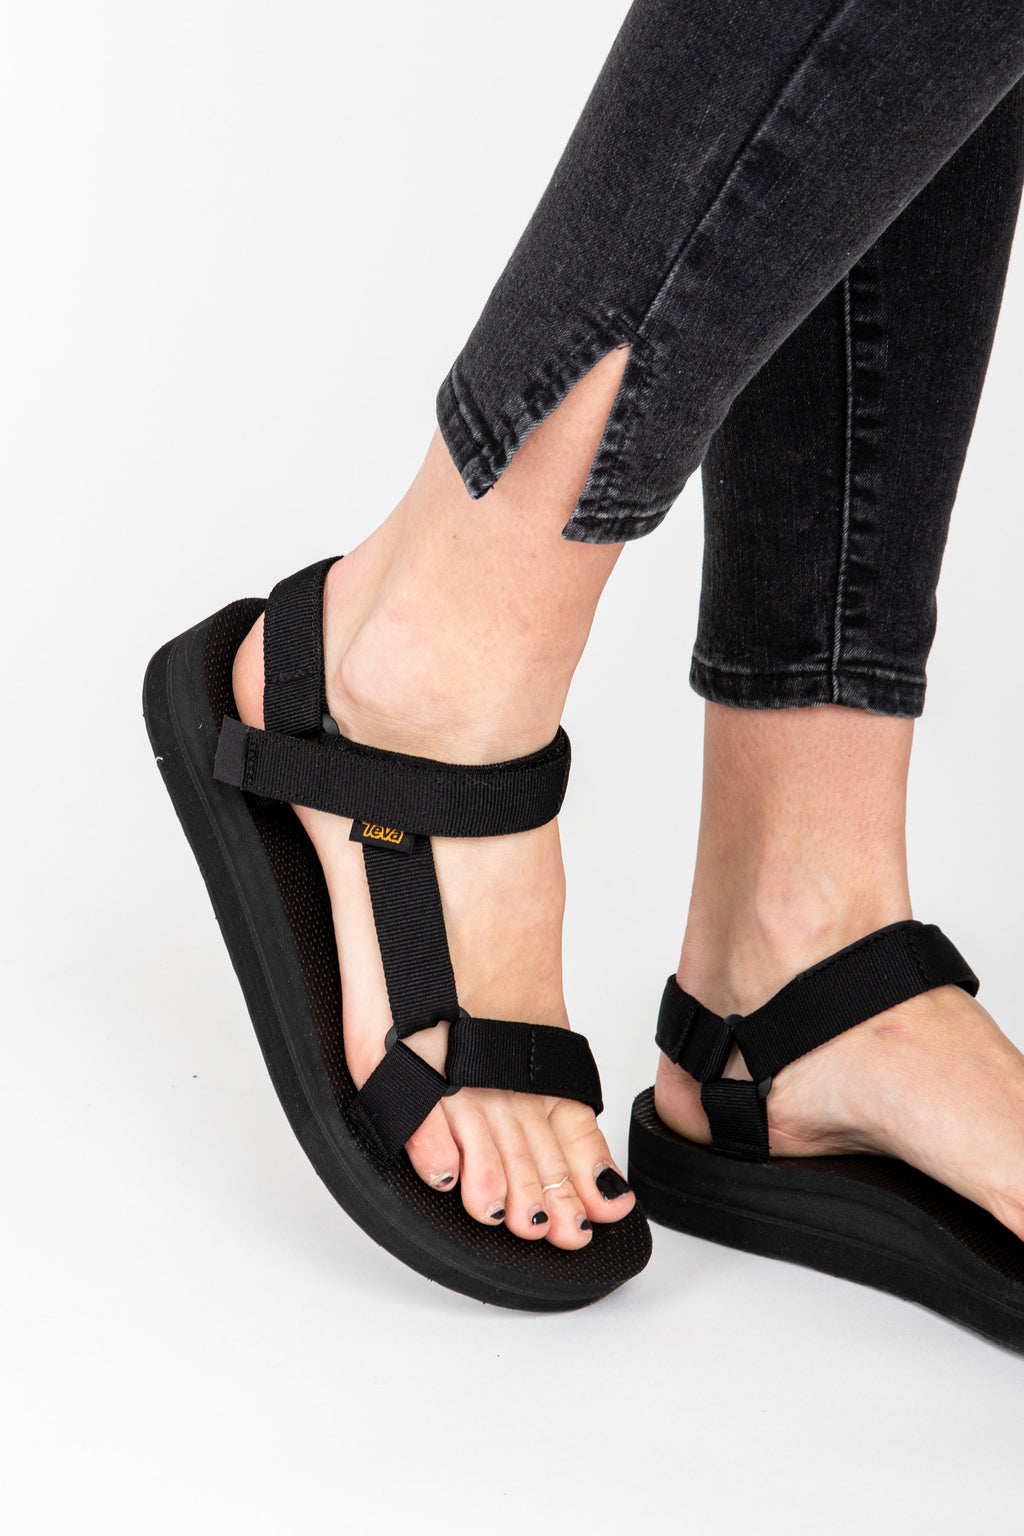 Teva: Midform Universal in Black, studio shoot; side view